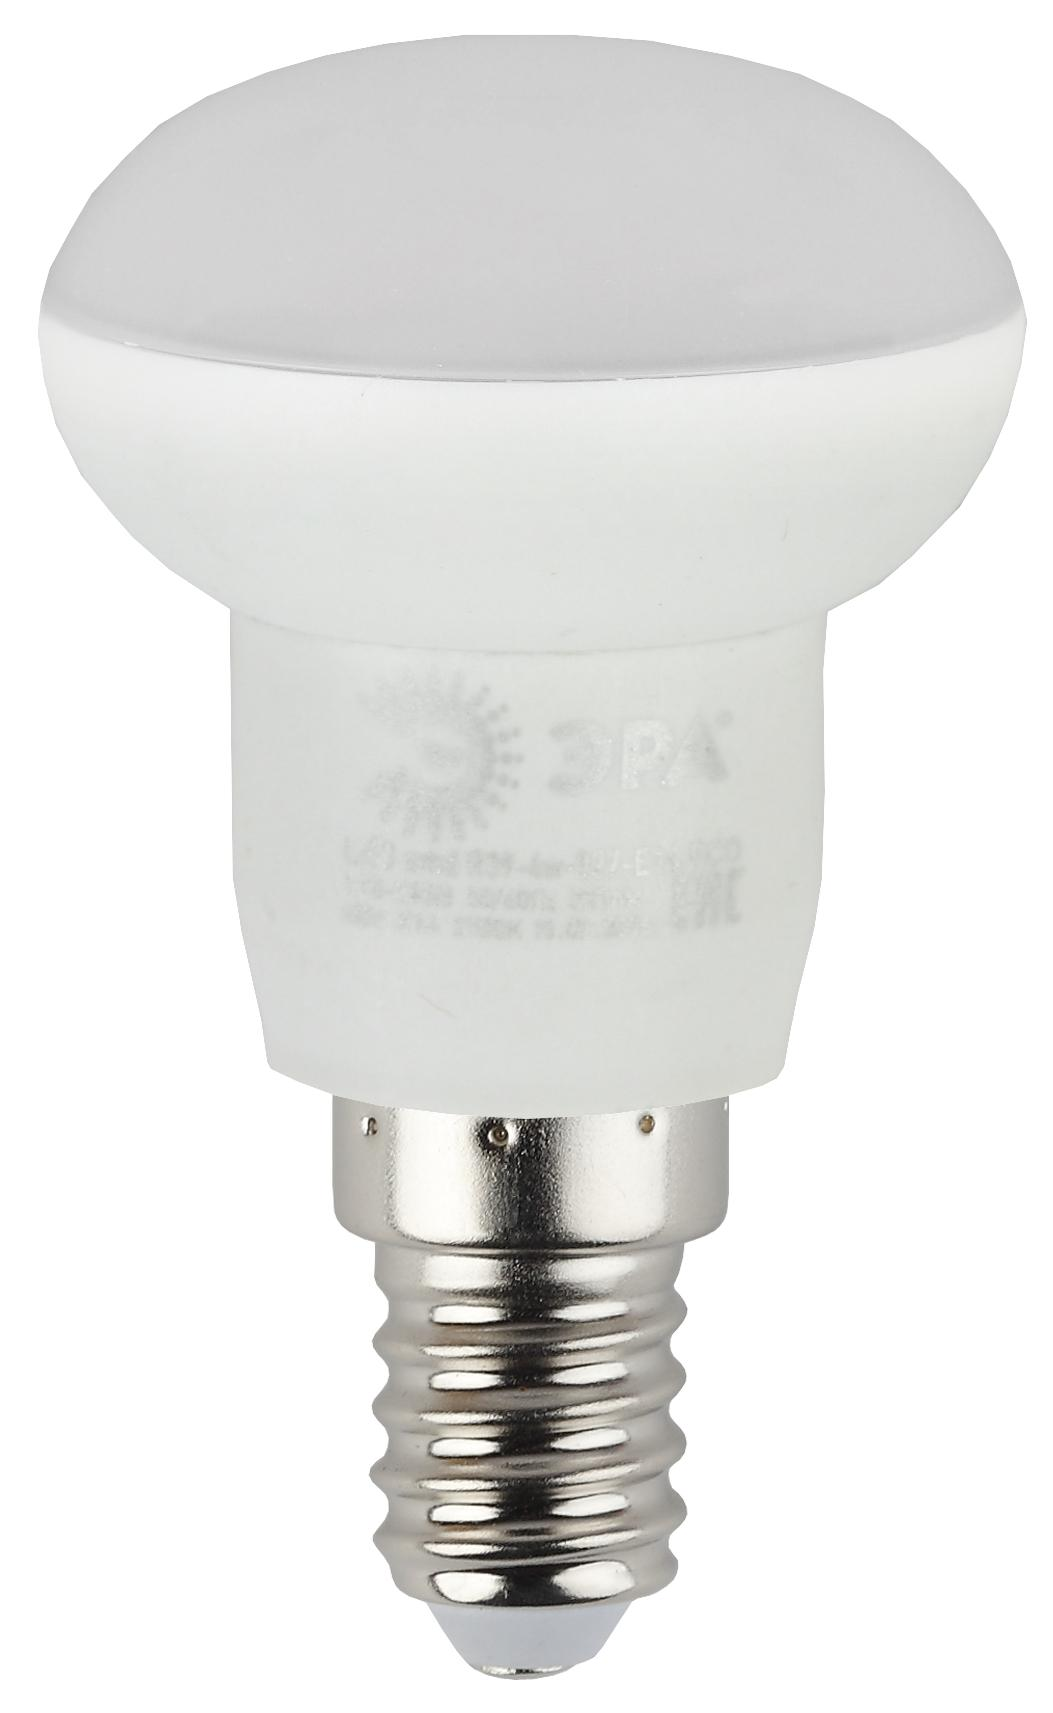 Лампа светодиодная ЭРА Led smd r39-4w-840-e14_eco gu10 4w 60x3528 smd led 240 lumen 3500k warm white light bulb ac 85 265v